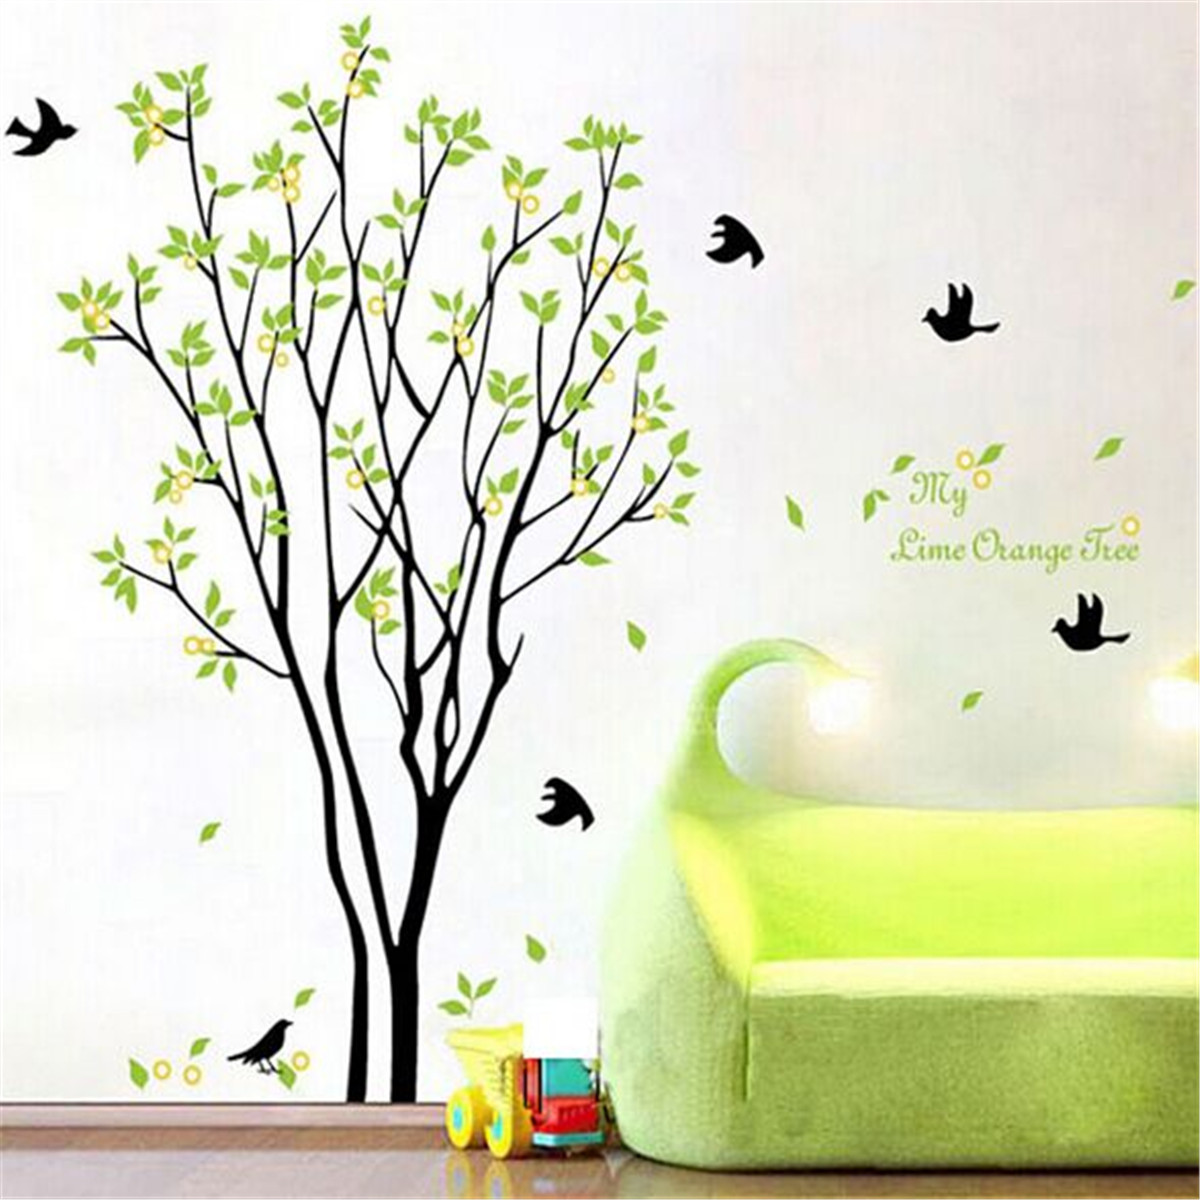 Bedroom Wall Art Trees Tree Bird Quote Removable Vinyl Wall Decal Mural Home Art